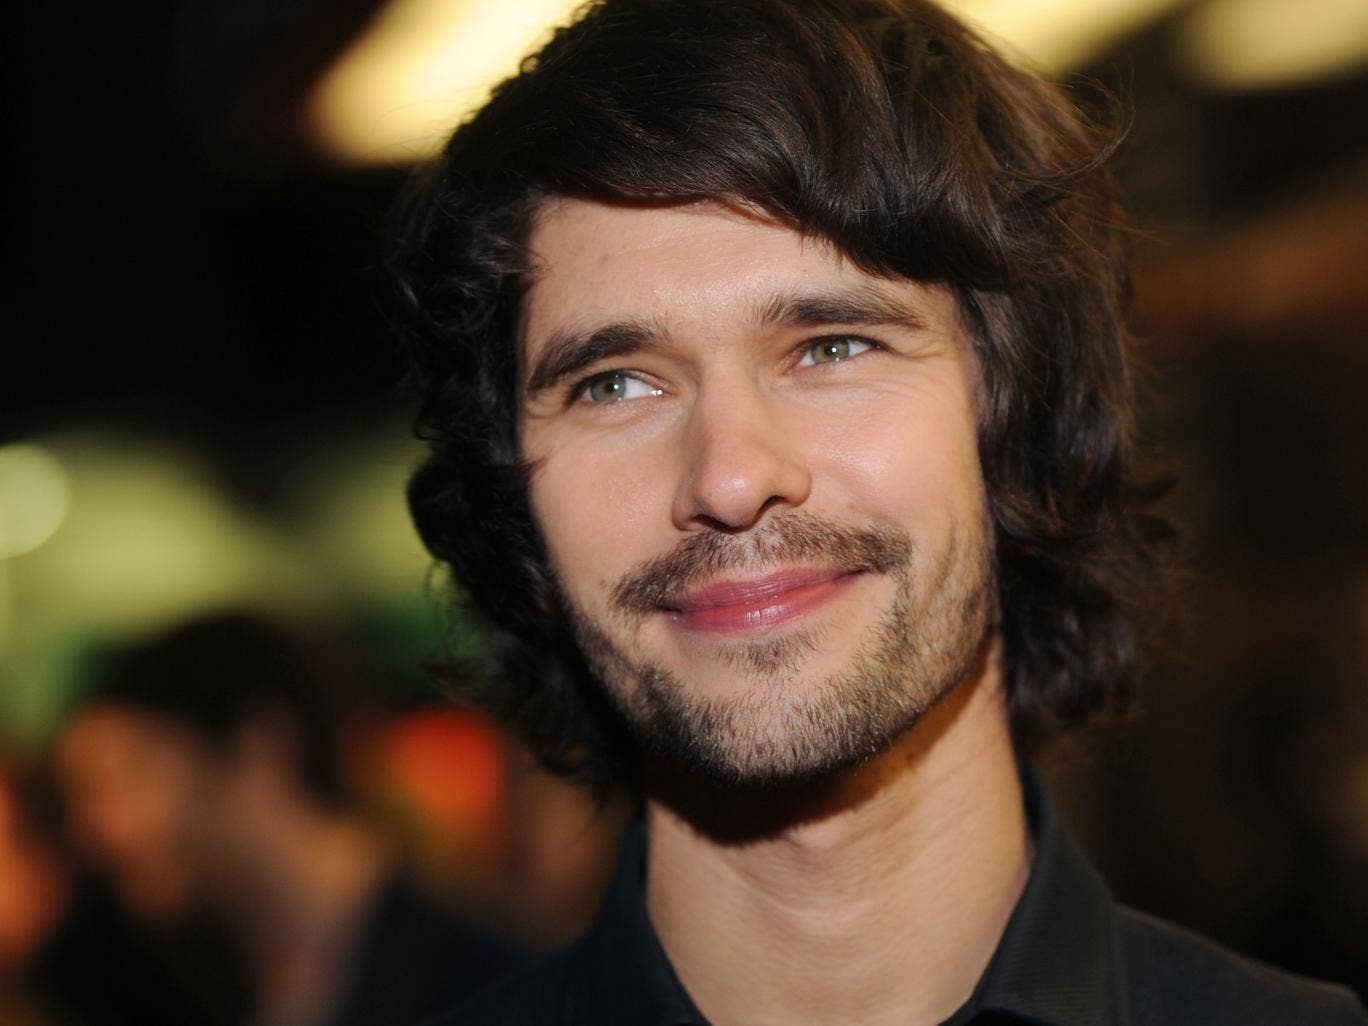 Ben Whishaw is replacing Colin Firth as the voice of Paddington Bear